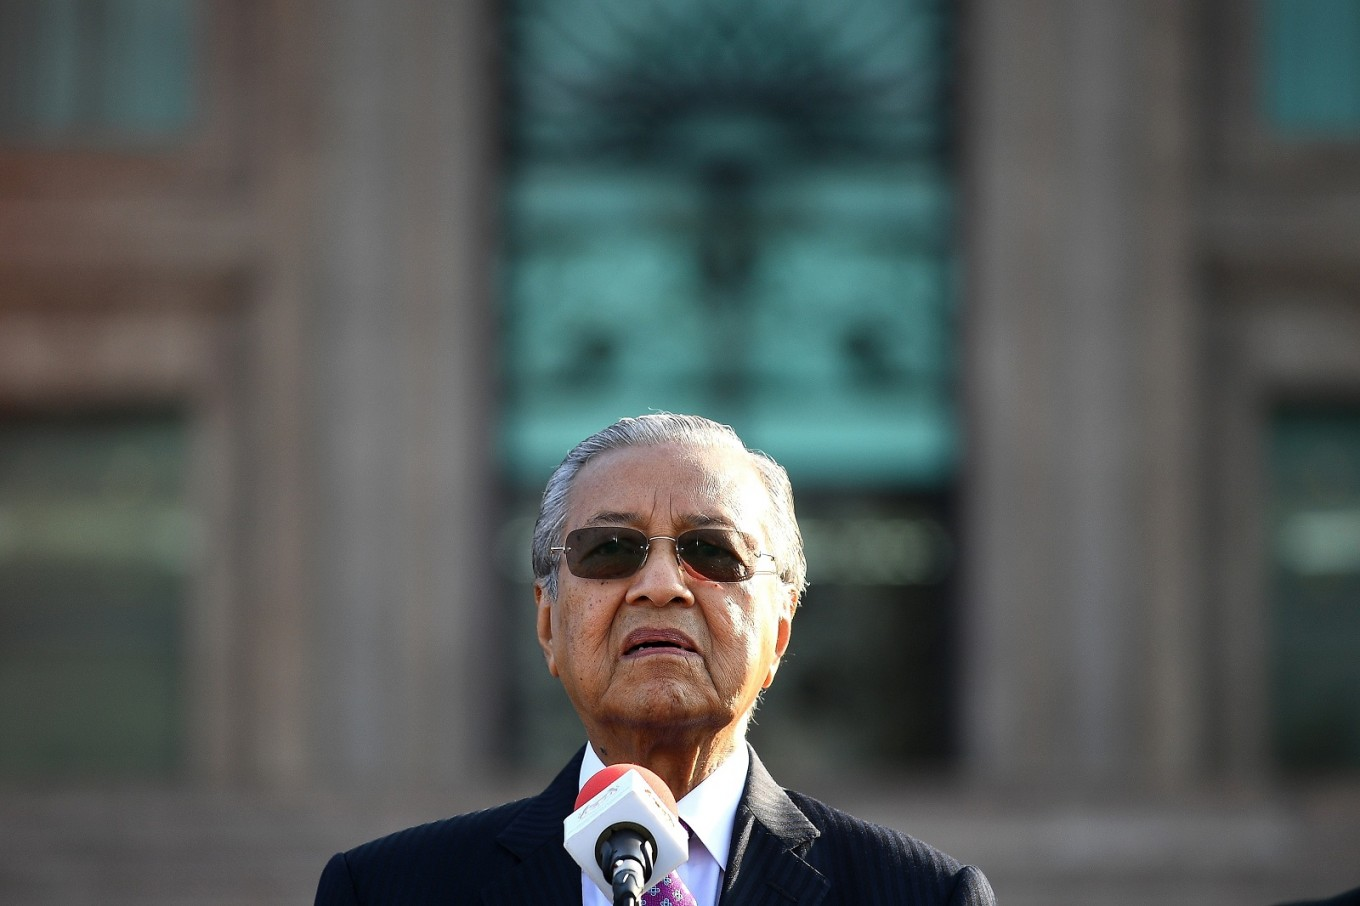 Malaysian PM says caning of lesbians counter to 'compassion of Islam'